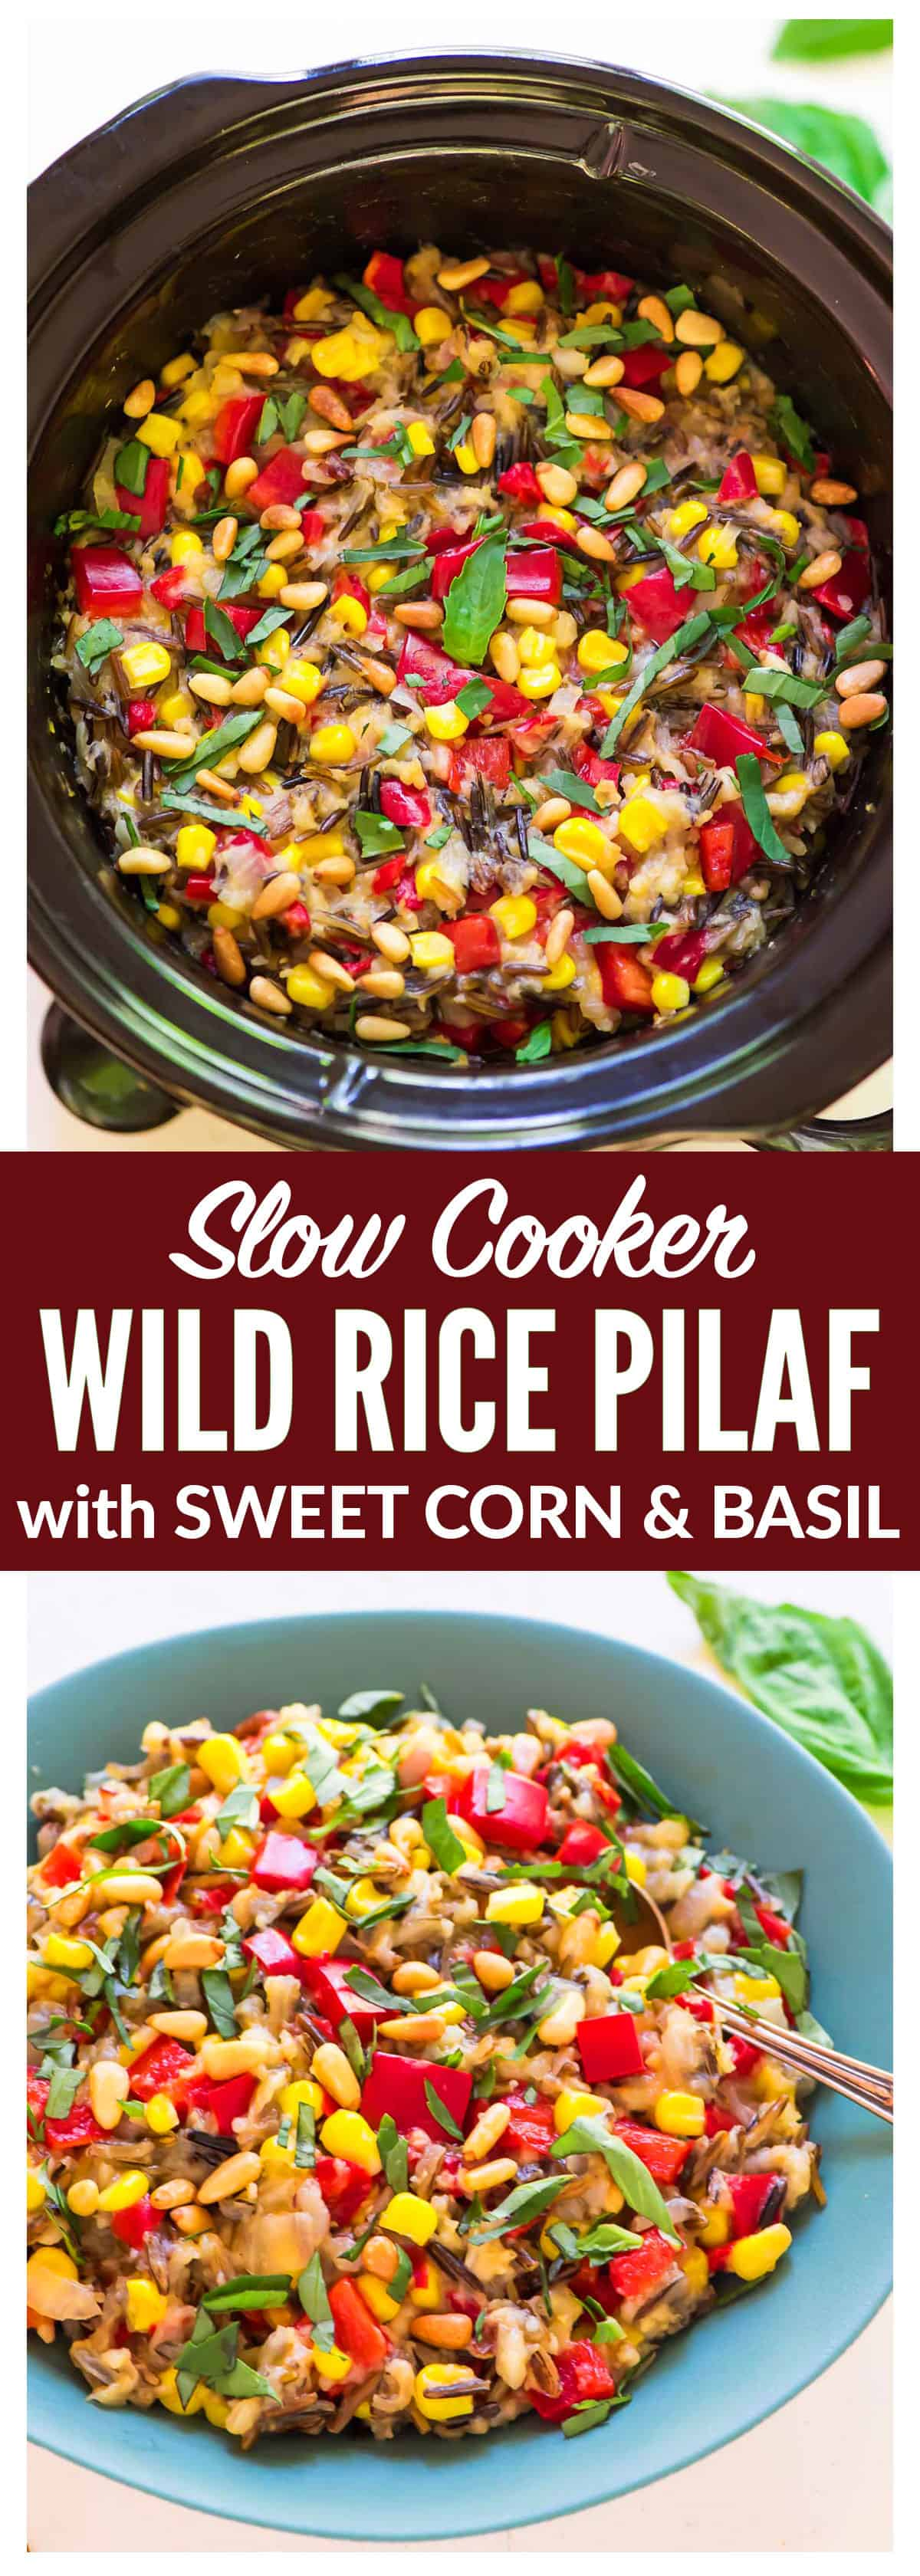 Easy Slow Cooker Wild Rice Pilaf with Sweet Corn, Basil, and Bell Peppers. One of our favorite summer side dishes! A summer spin on classic brown and wild rice pilaf that's bright, healthy, and perfect for barbecues, picnics, or anytime you don't want to turn on the oven! Recipe at wellplated.com | @wellplated #crockpot #slowcooker #easysidedish #rice #summerrecipes